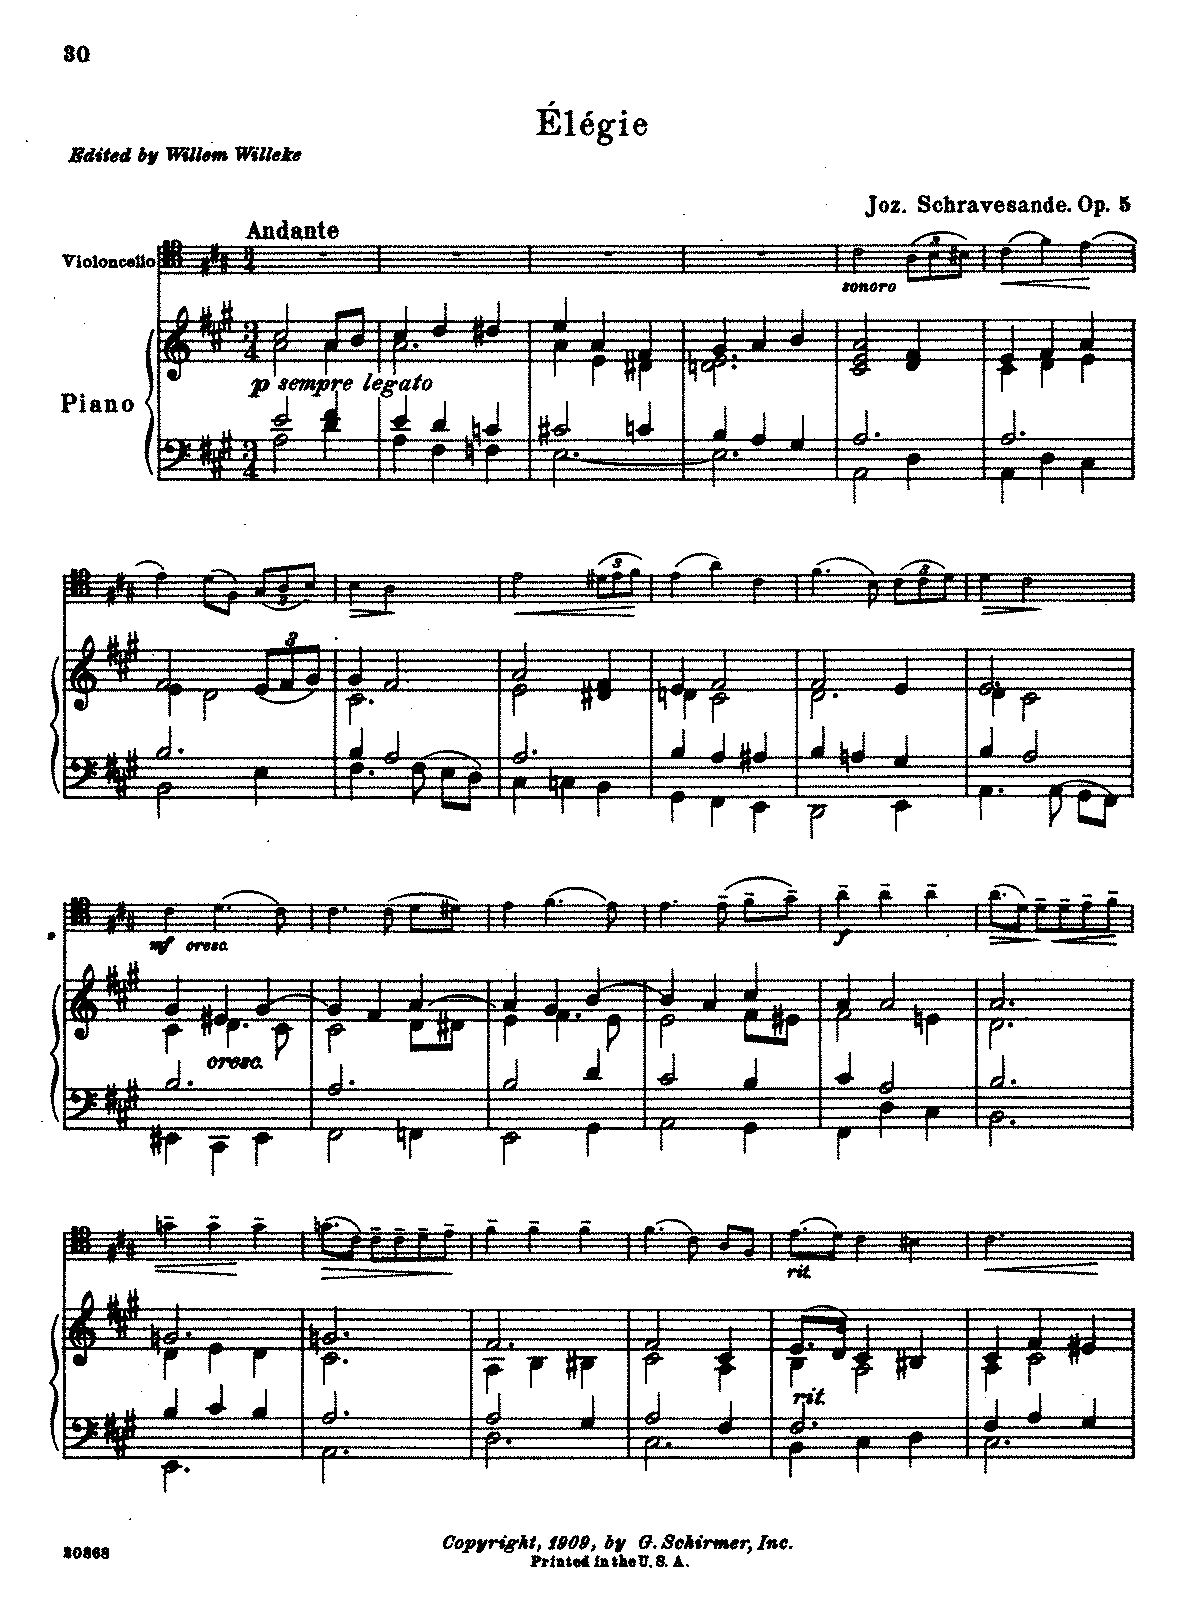 PMLP236818-Schravesande - Elegie Op5 (Willeke) for cello and piano.pdf